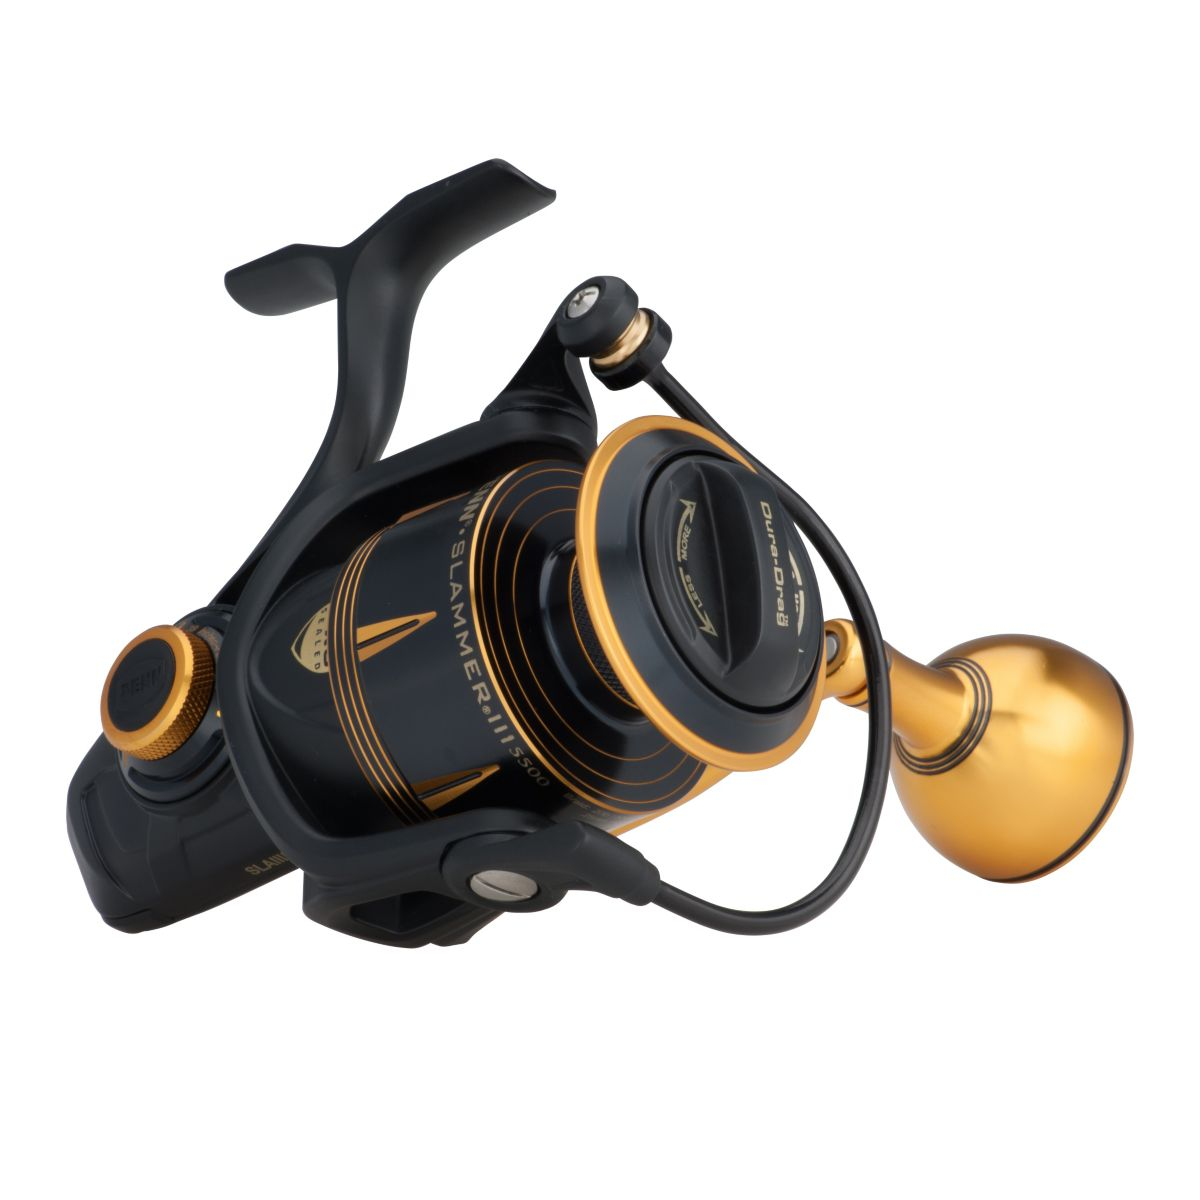 Penn slammer iii reel specs click to view larger pooptronica Images